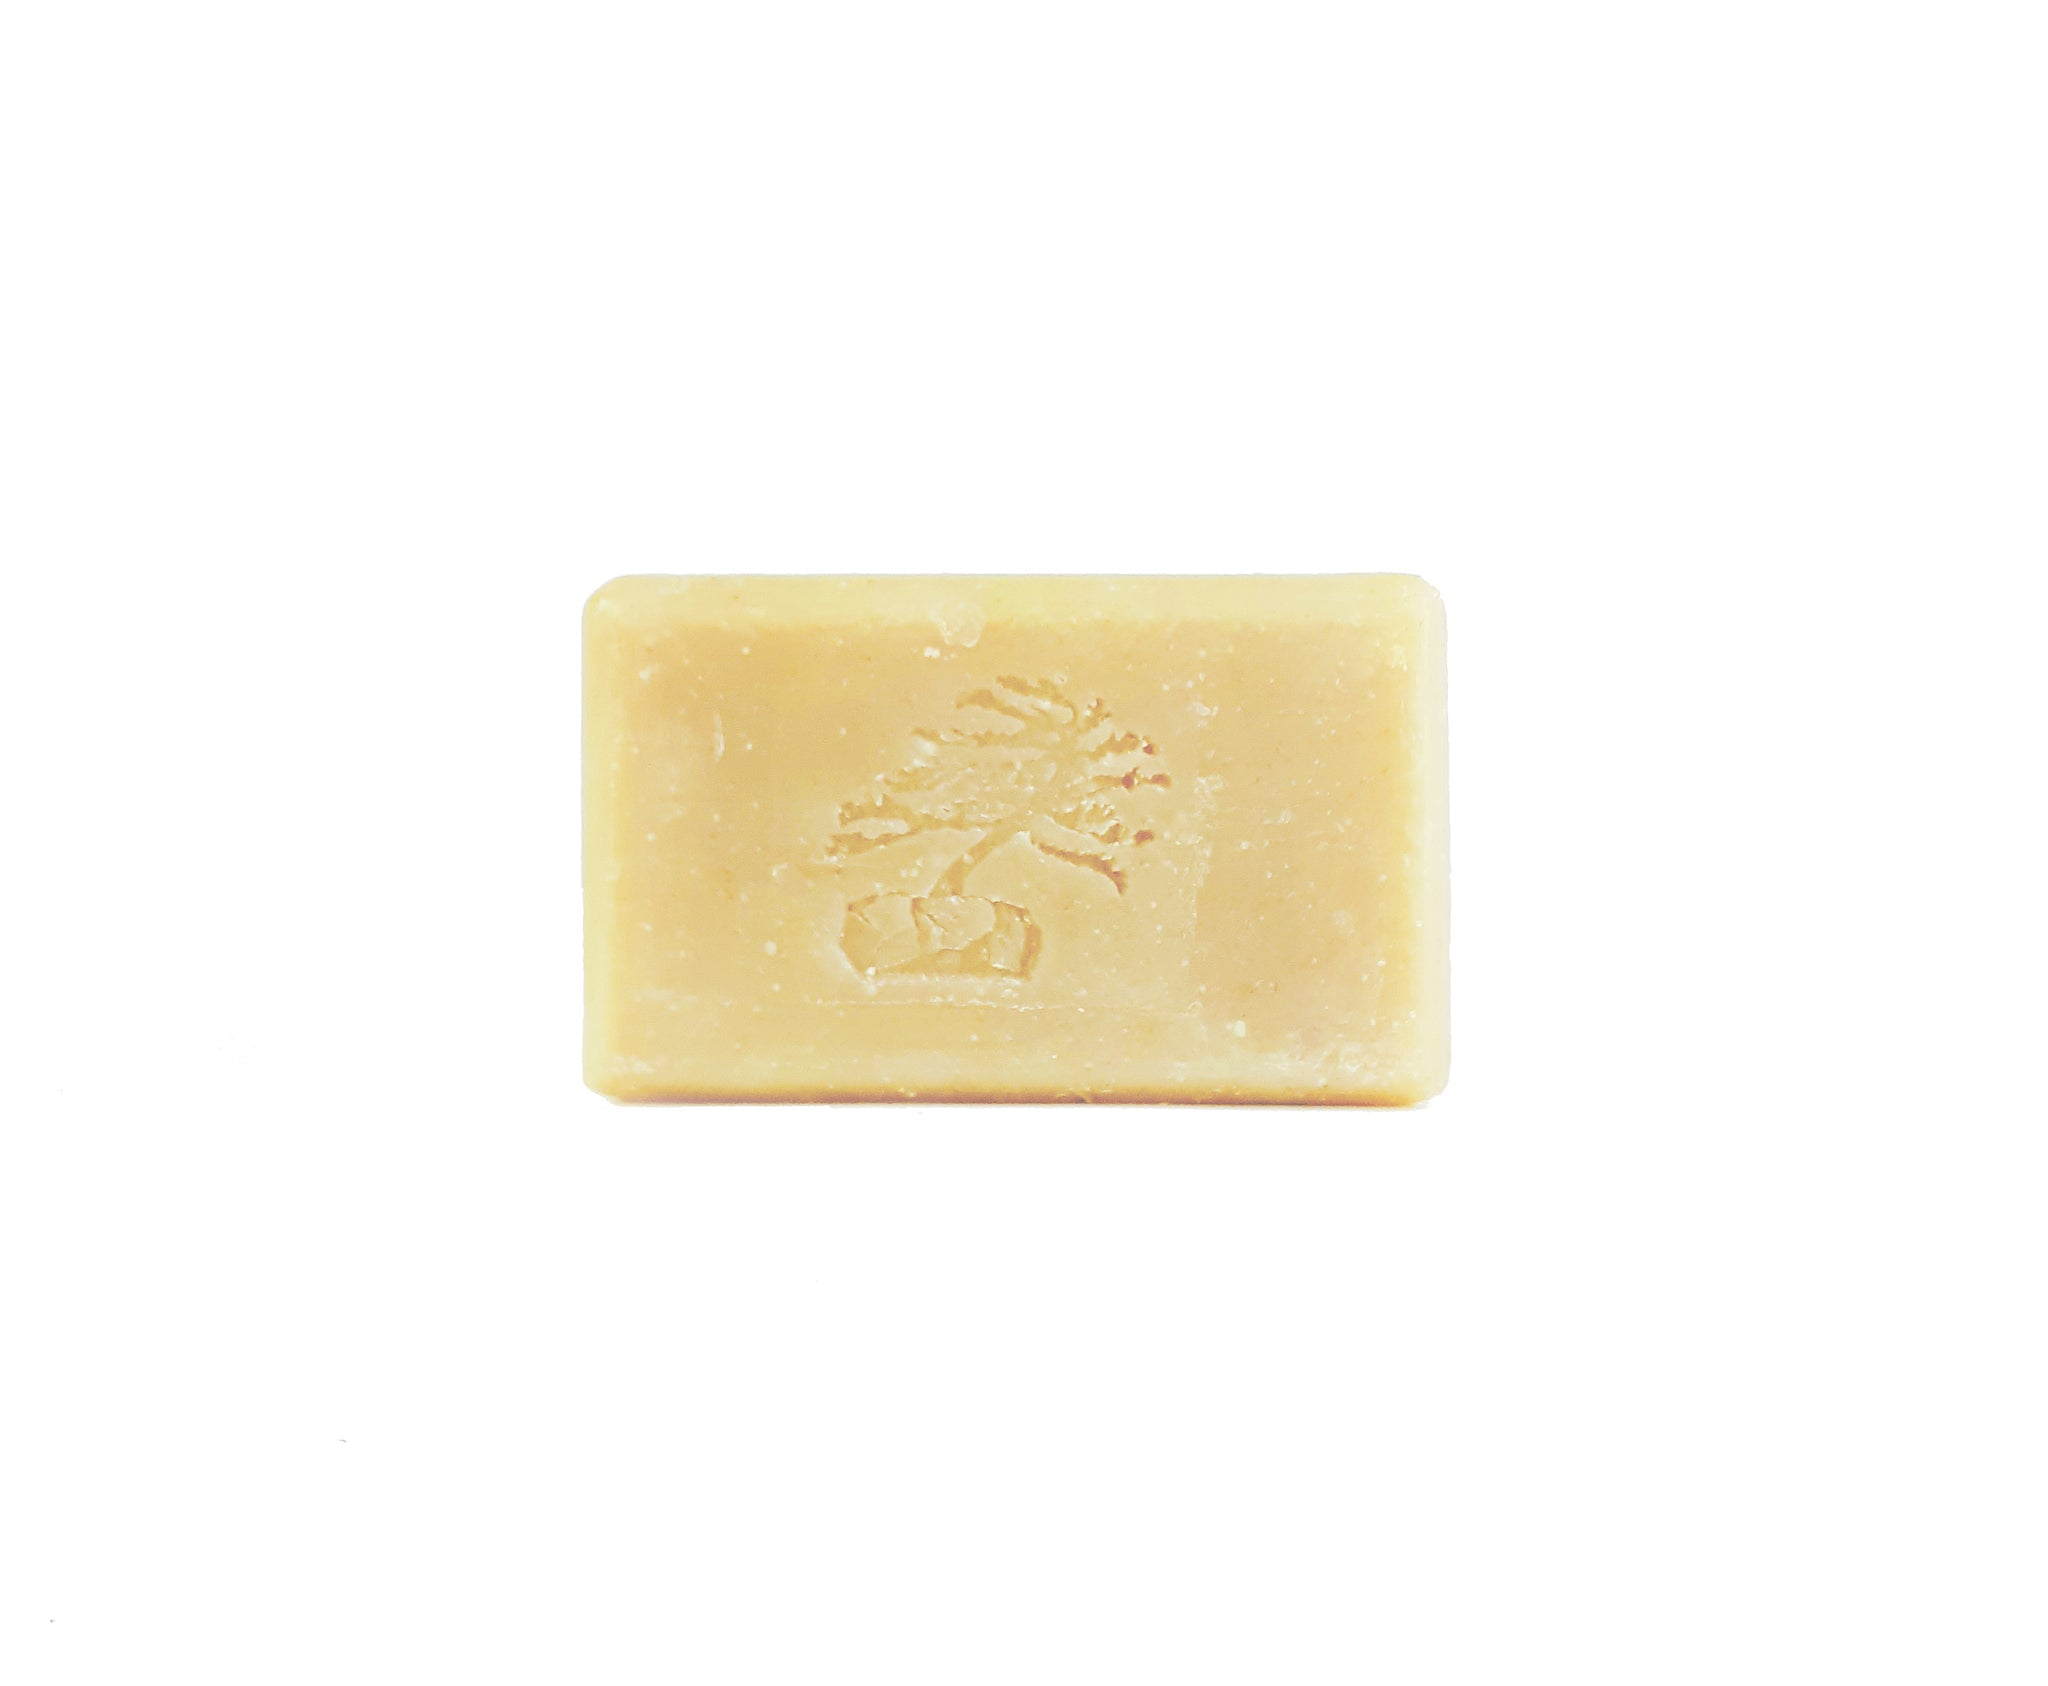 Rosemary Mint Shampoo Bar - Soapstones Natural Skincare